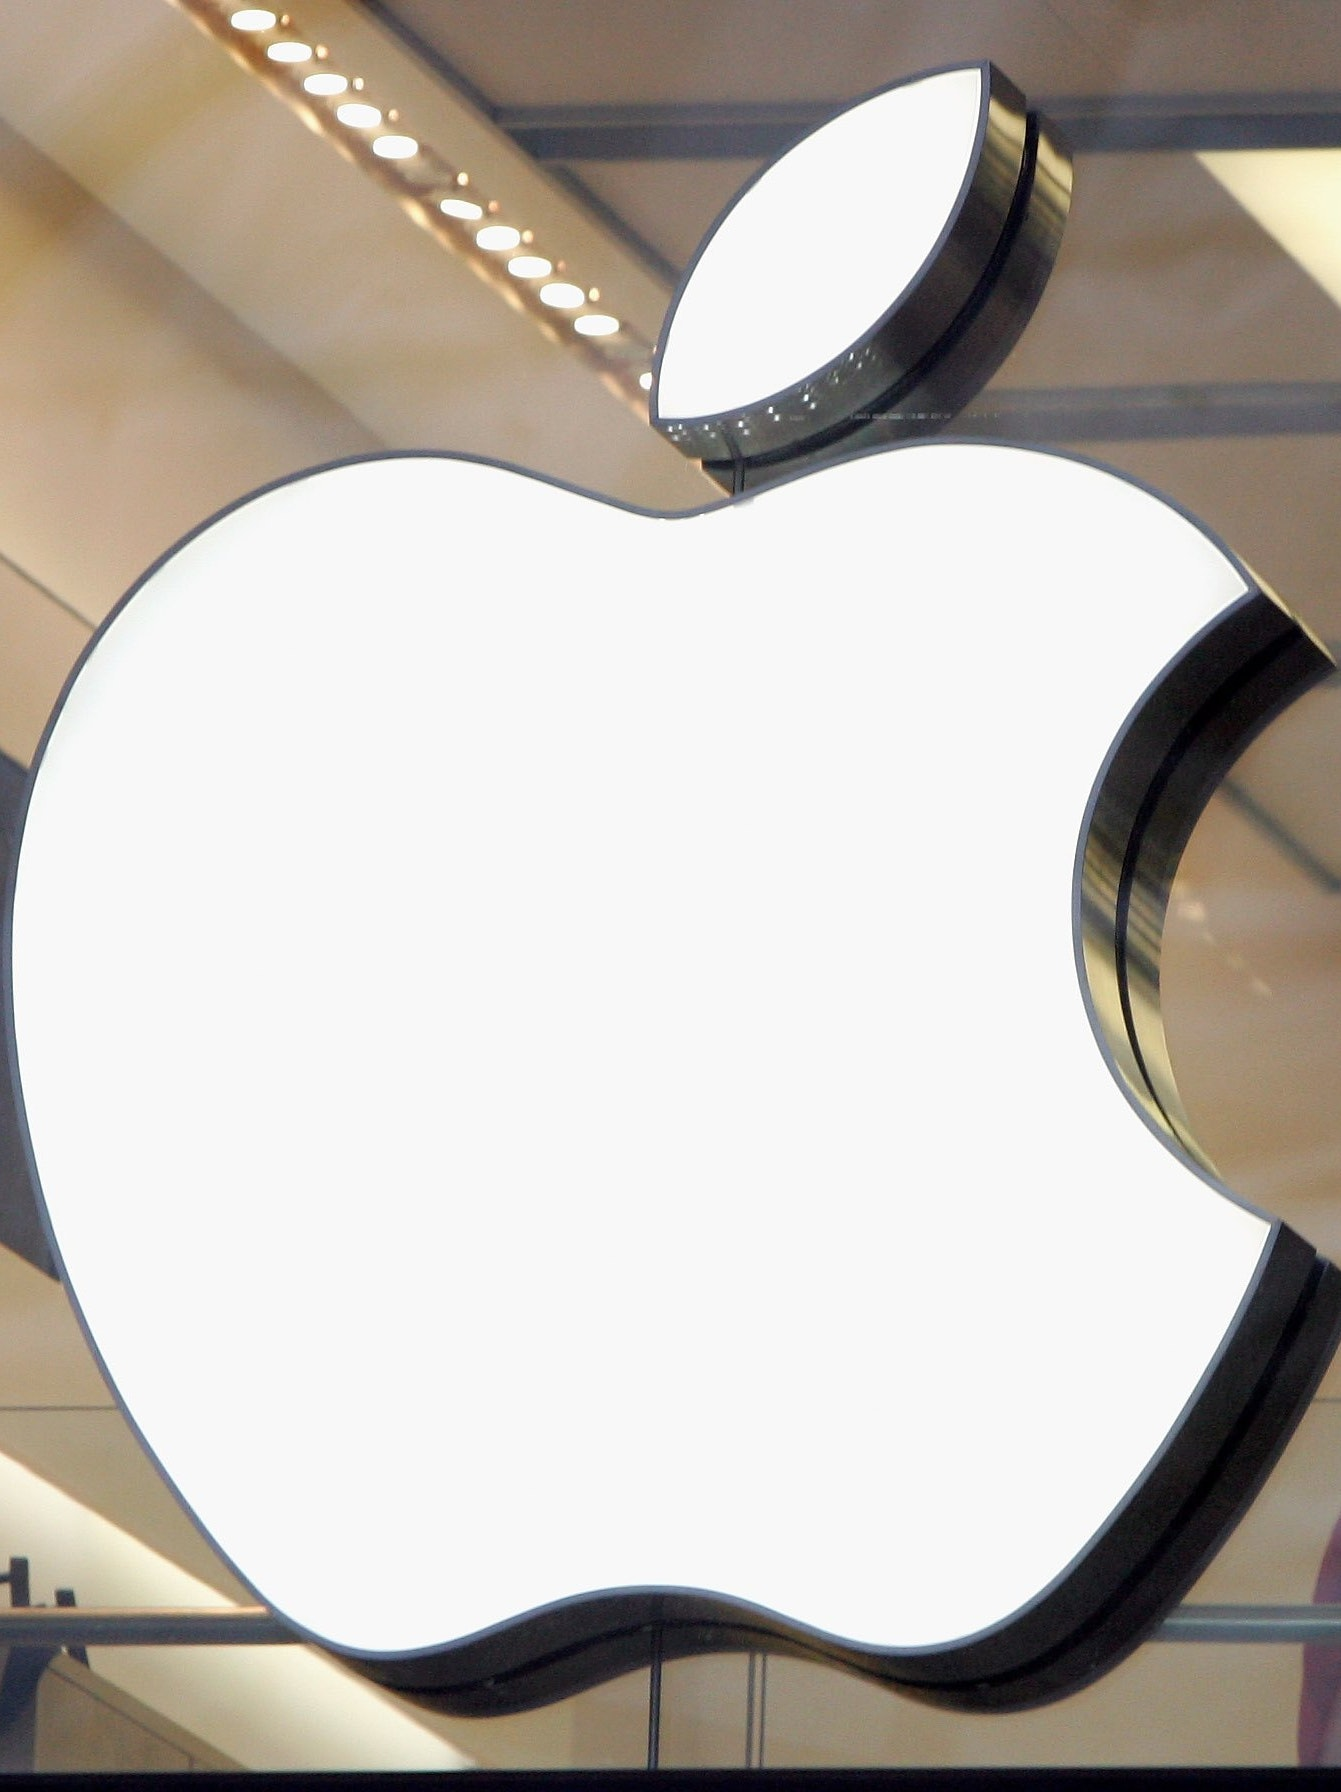 People are seen behind the Apple logo in Apple's flagship London retail store on Regent Street on December 27, 2006 in London, England.